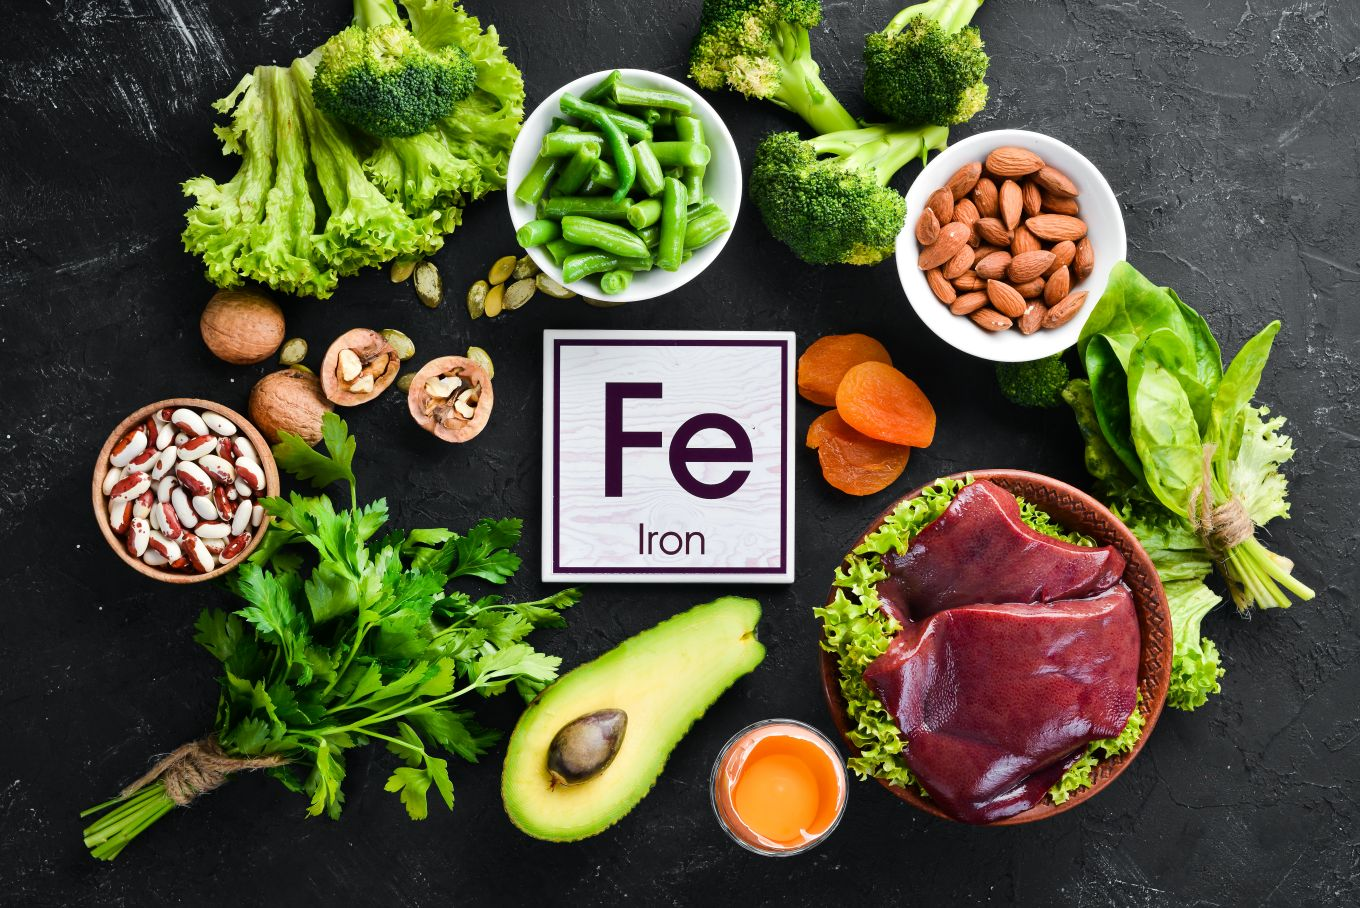 Food items that can reduce the chances of Iron Deficiency